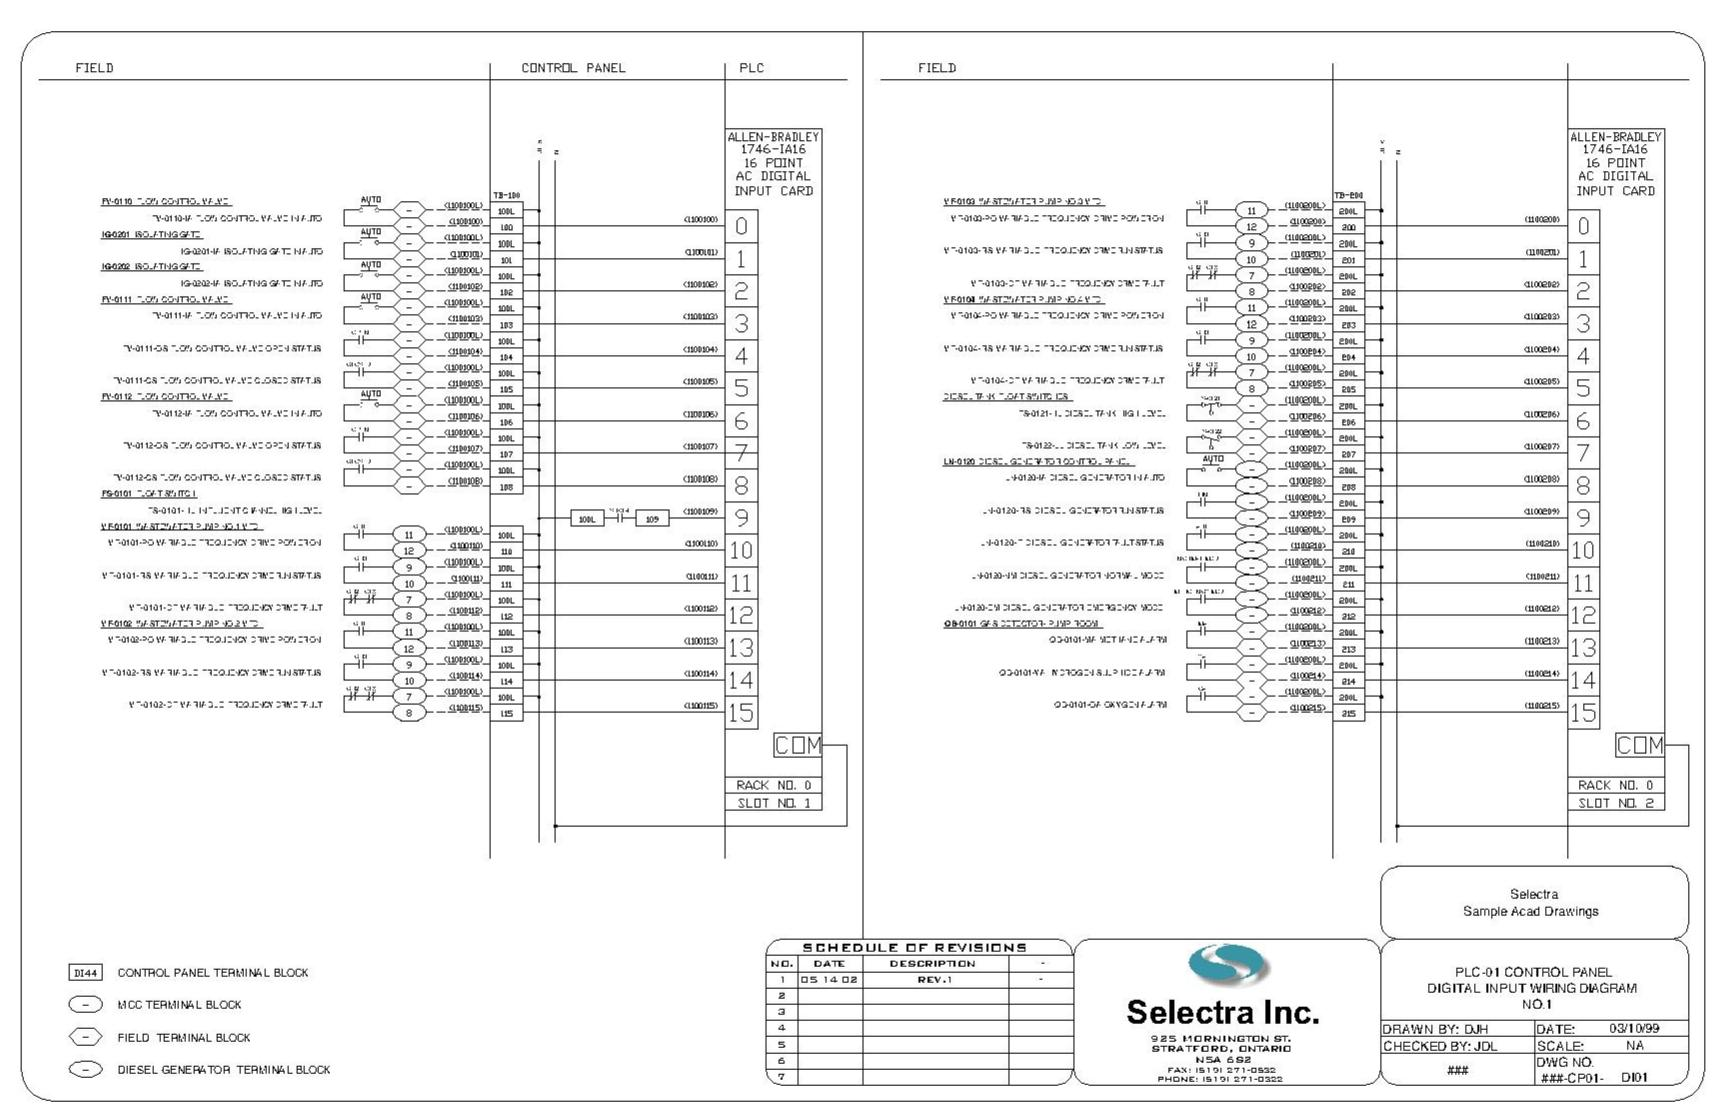 ab di01 Model 1 phase starter panel 1746 ob16 wiring diagram at bayanpartner.co